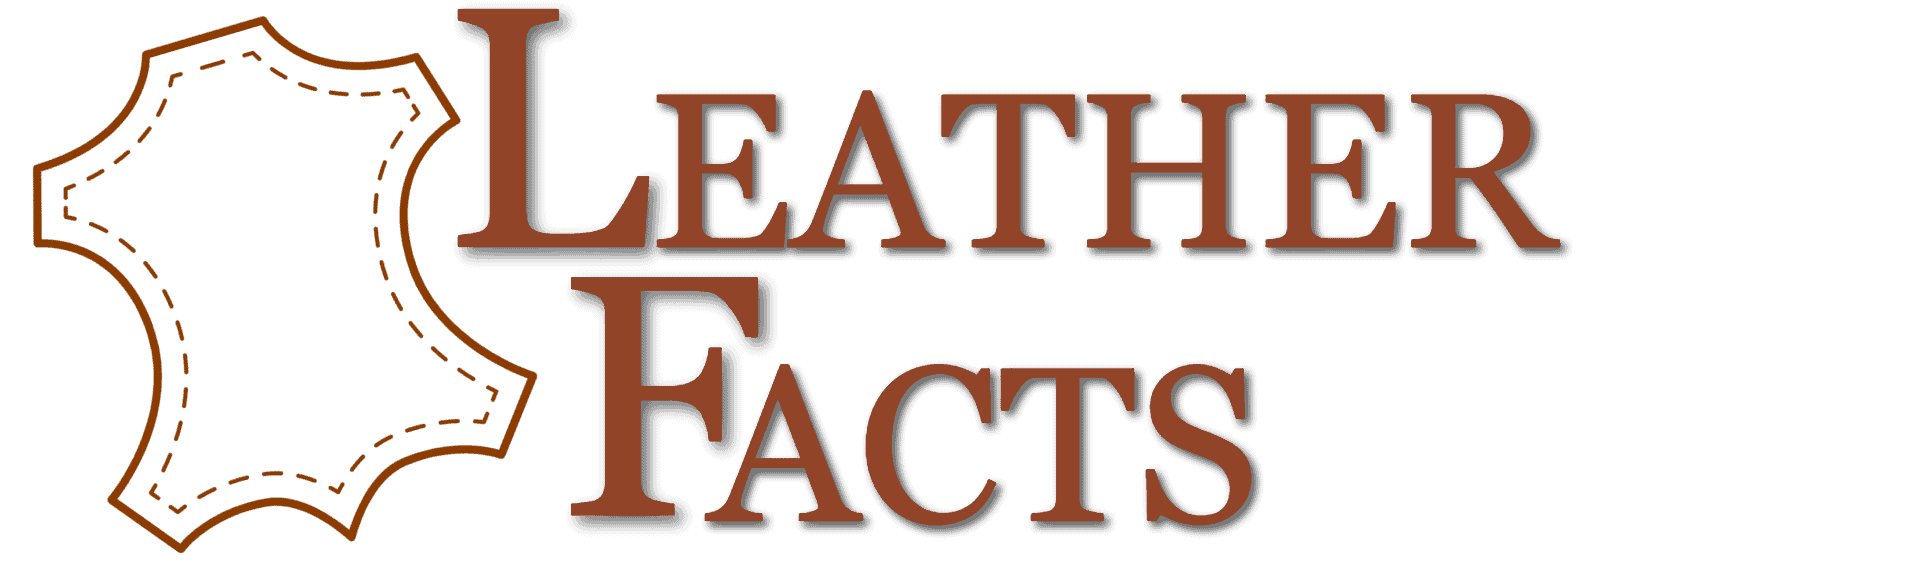 Leather Facts